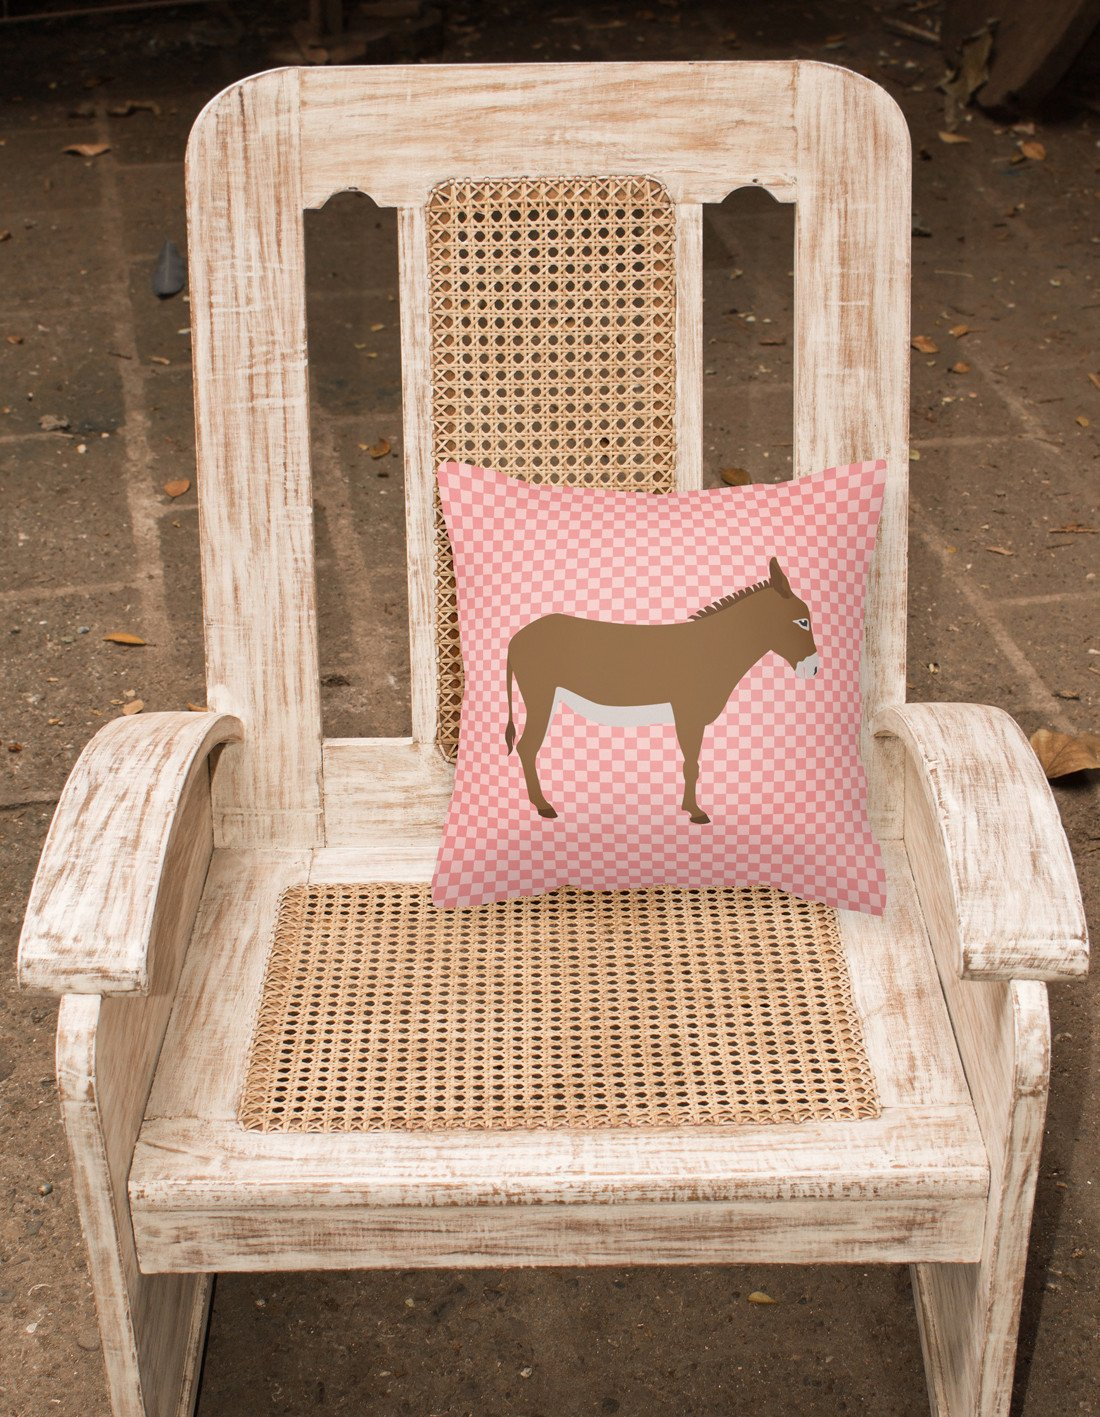 Cotentin Donkey Pink Check Fabric Decorative Pillow BB7849PW1818 by Caroline's Treasures